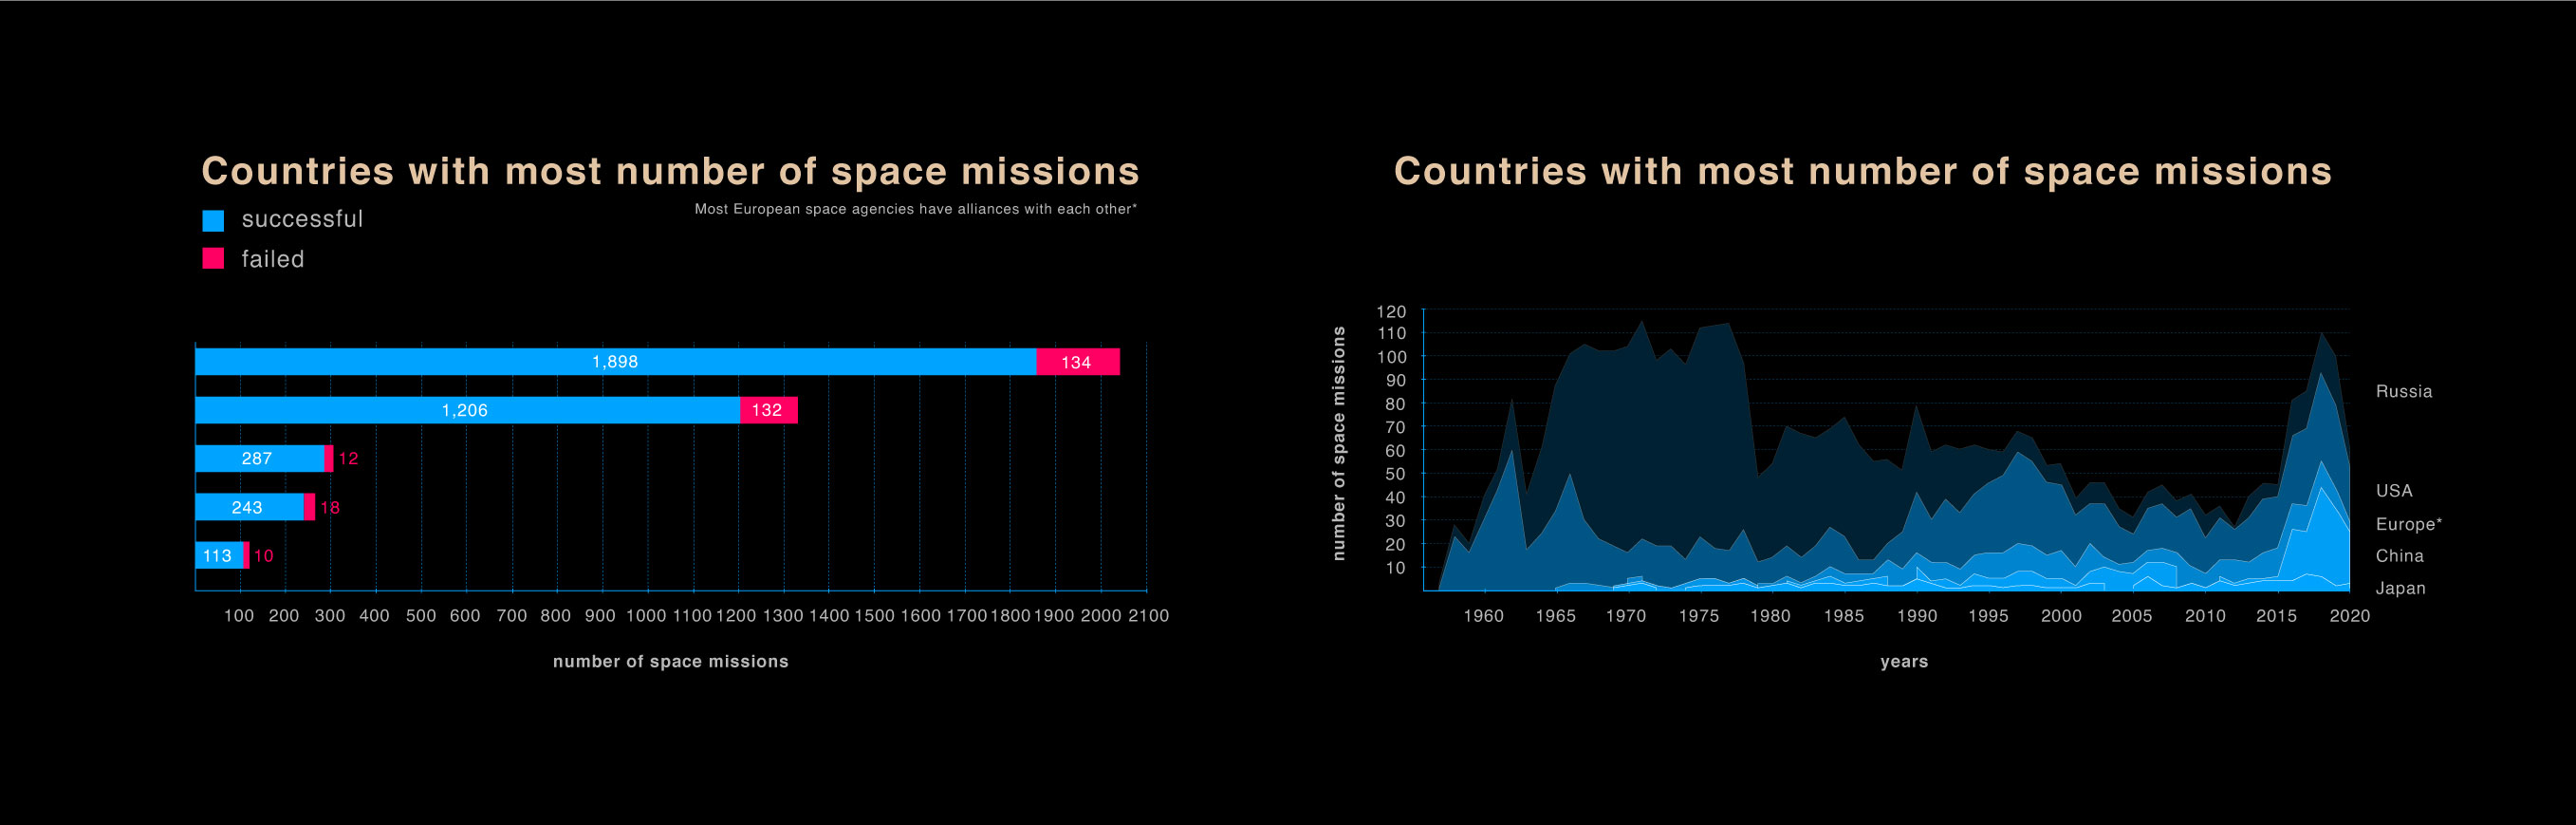 Data visualization for countries and their space missions